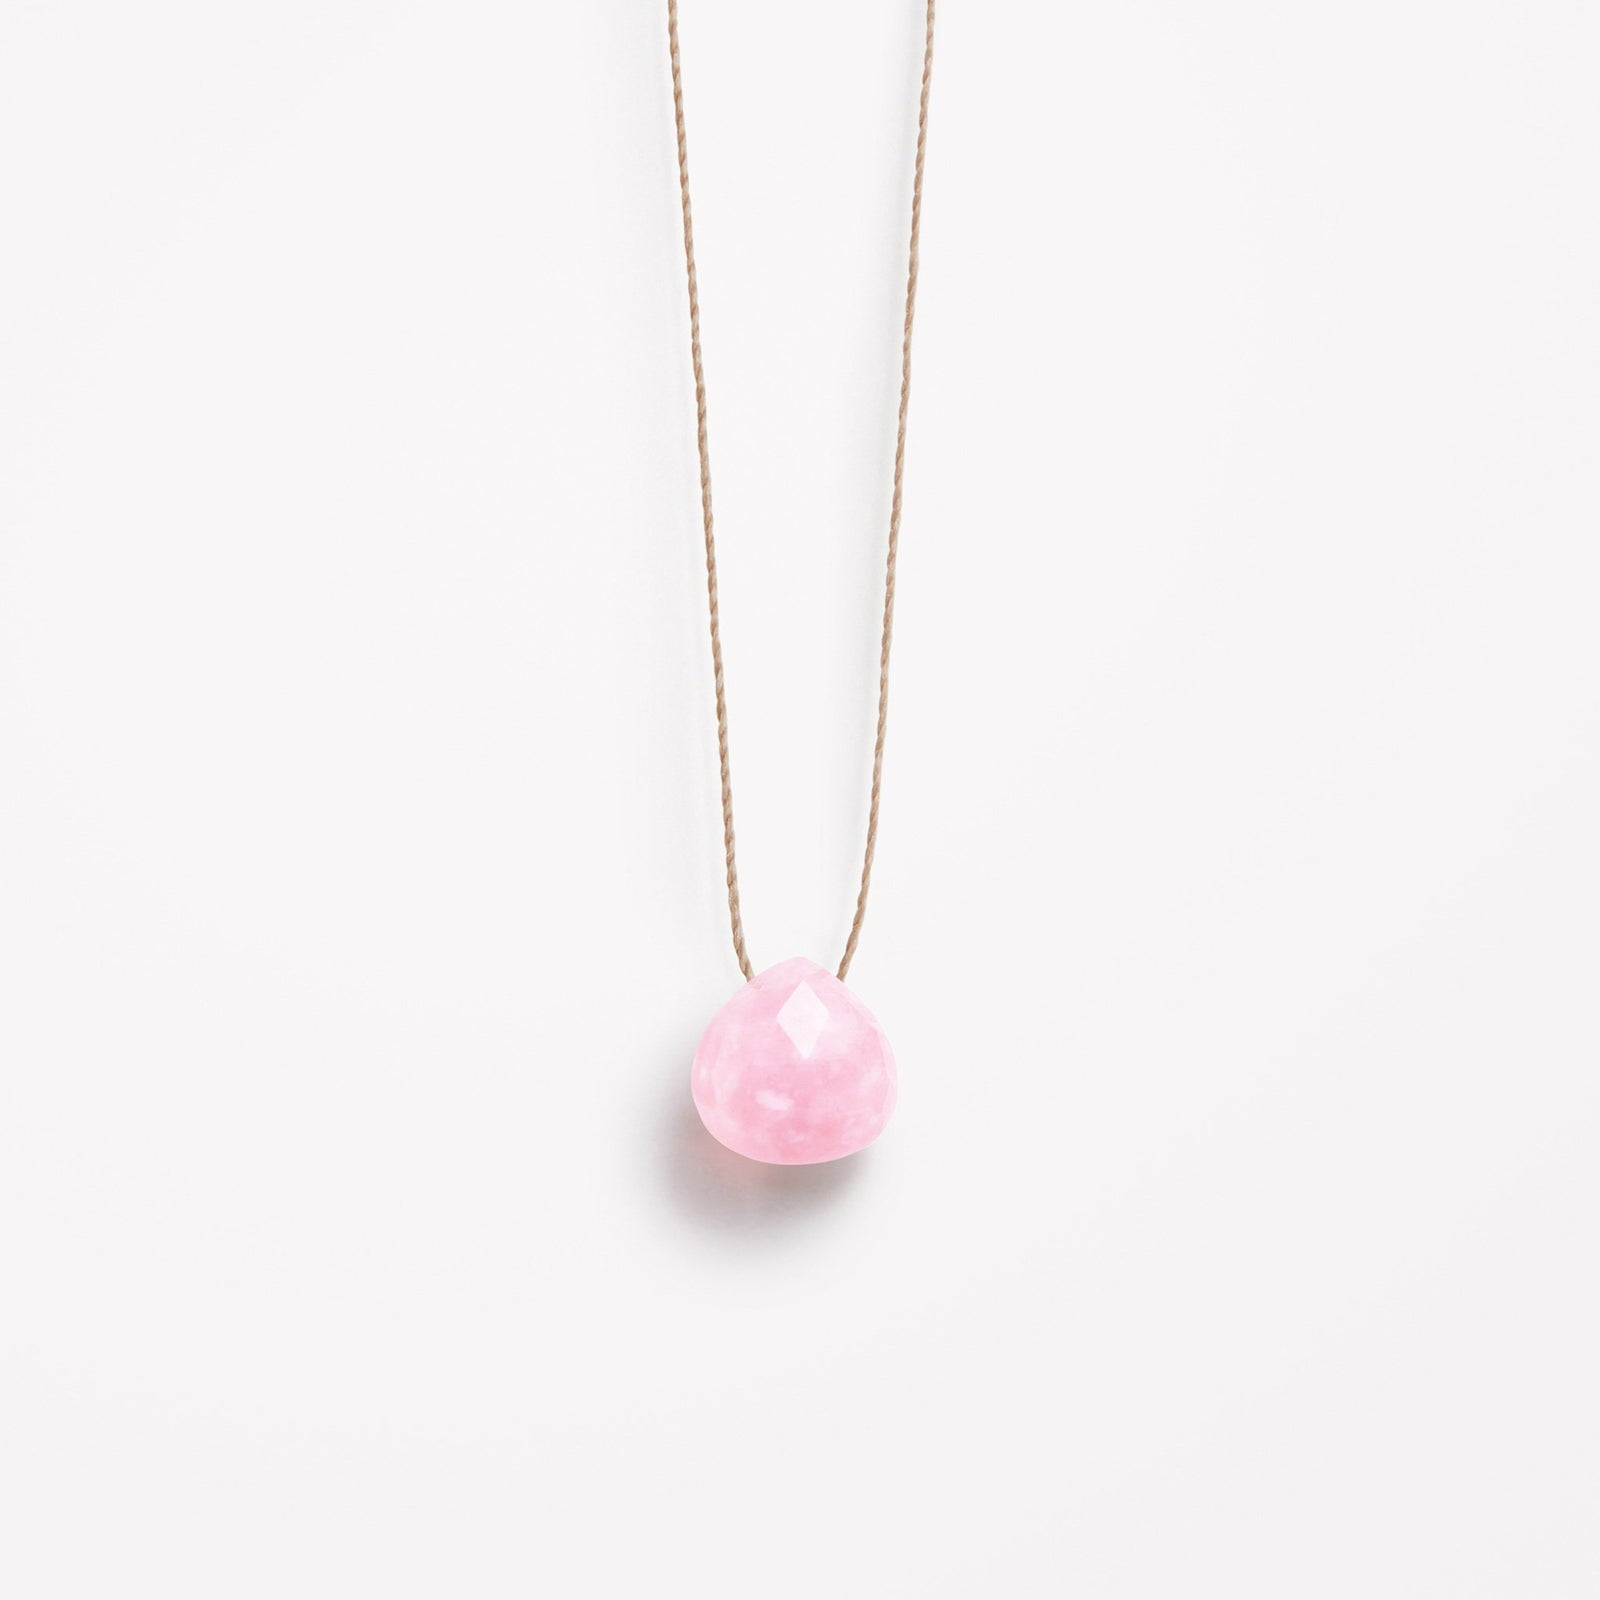 Wanderlust Life Ethically Handmade jewellery made in the UK. Minimalist gold and fine cord jewellery. october birthstone, pink opal fine cord necklace